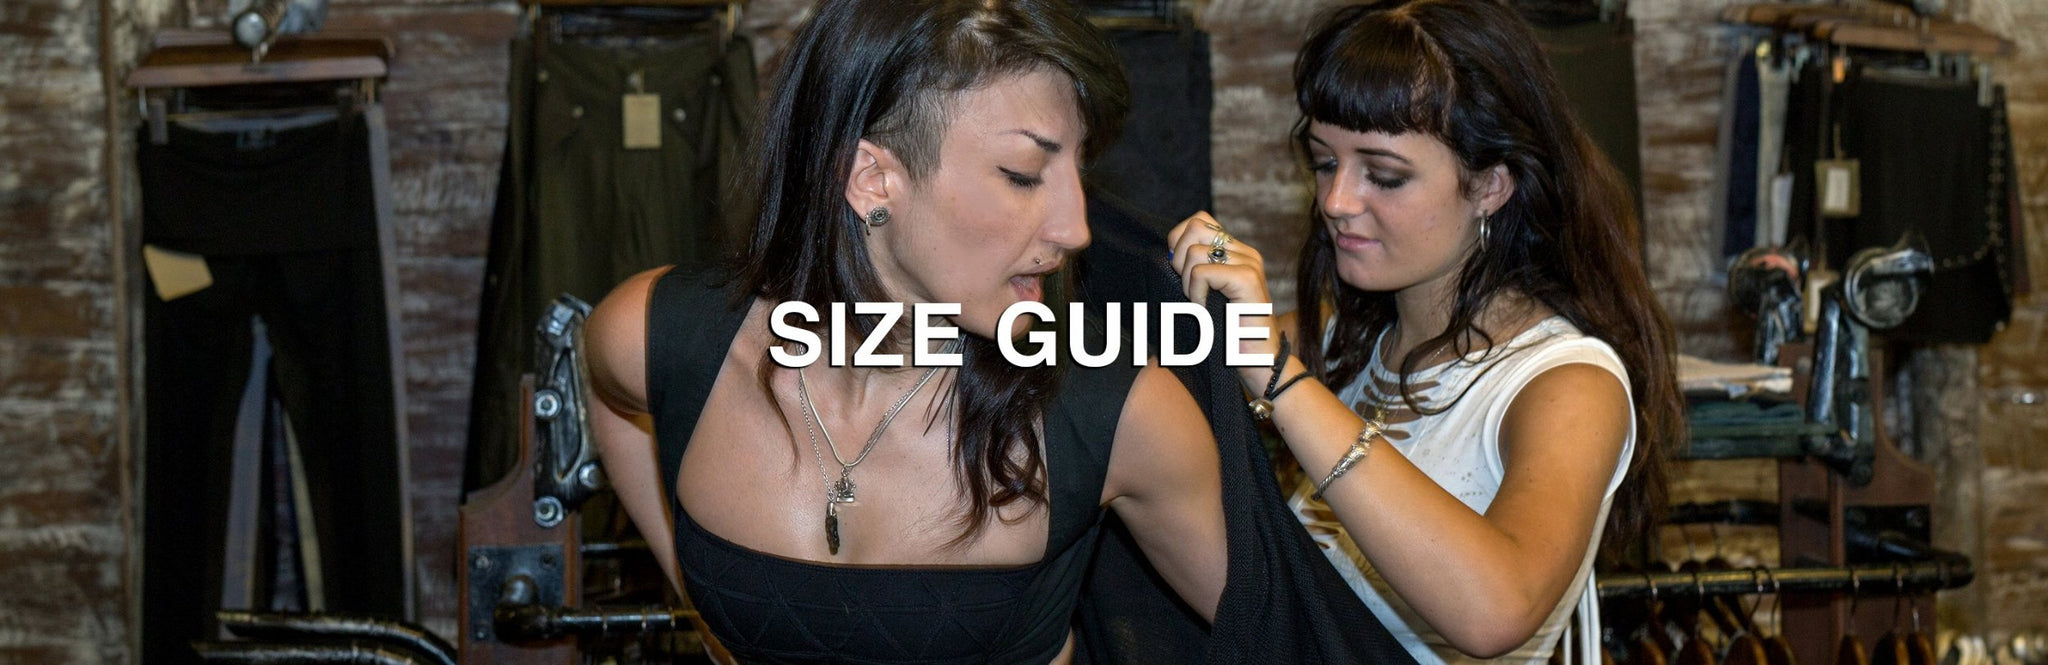 psylo fashion size guide